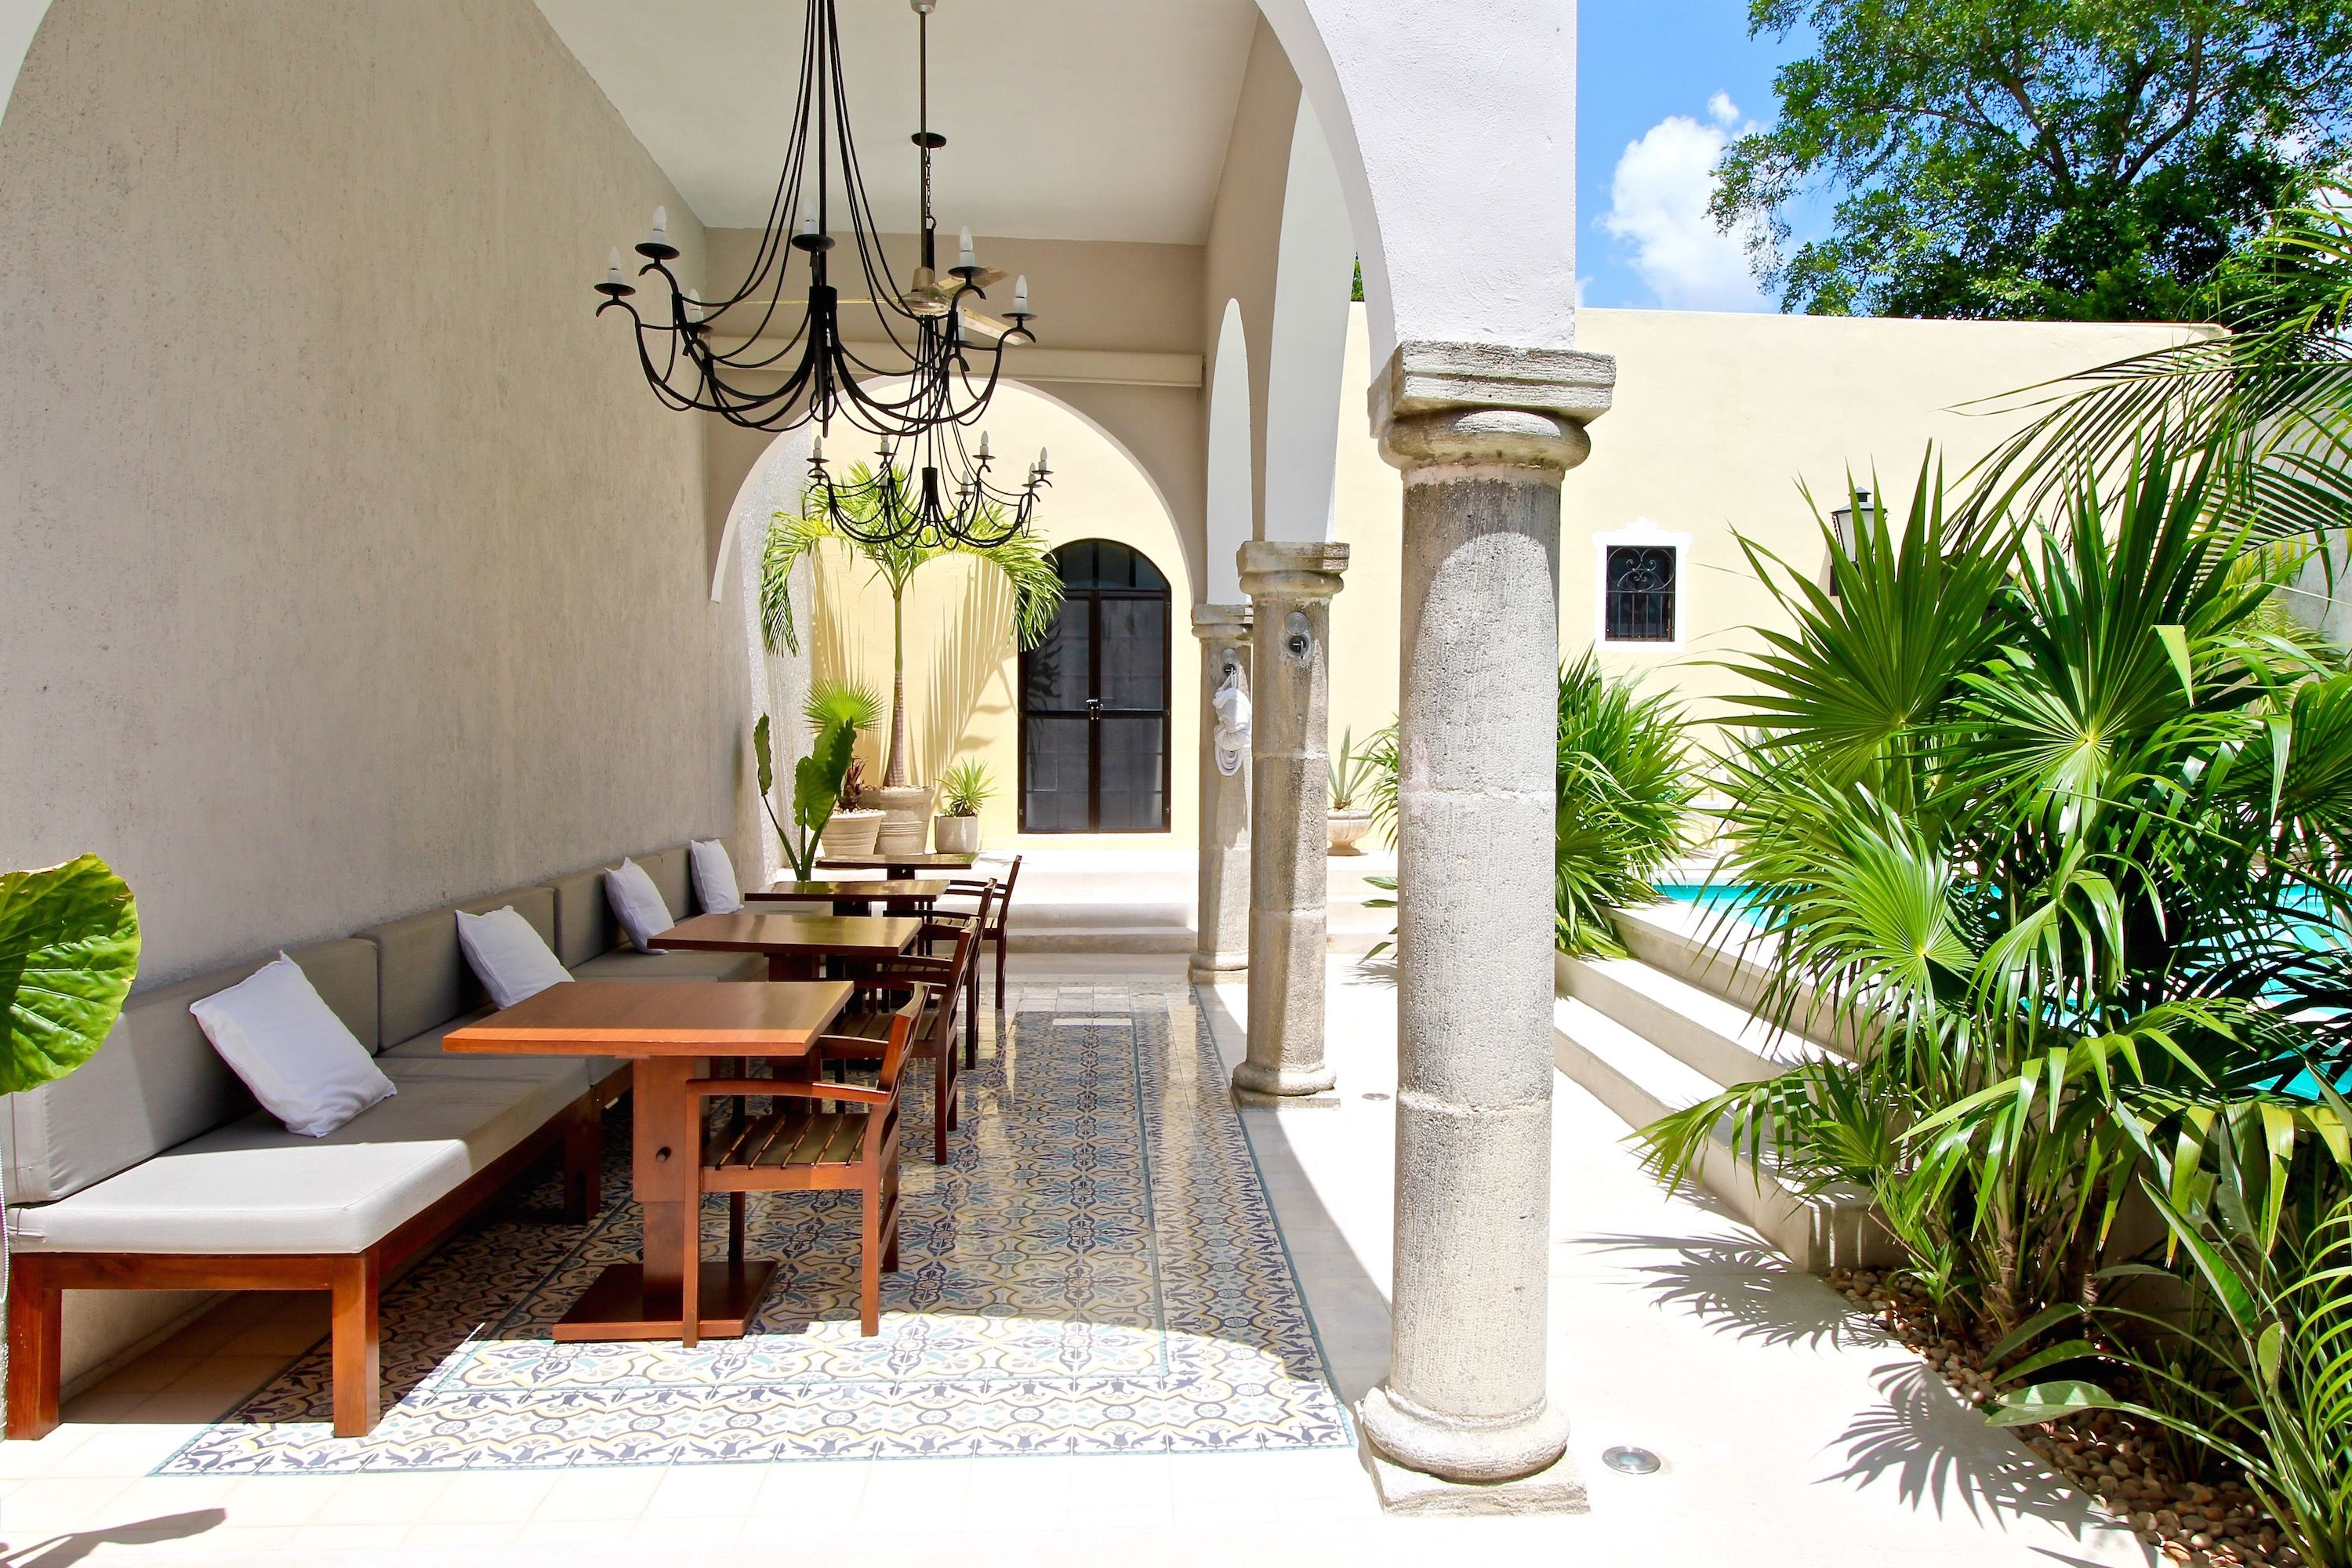 The Diplomat - Terrace #Merida #Yucatan #Mexico #Spanishcolonial #Design #Cementtiles